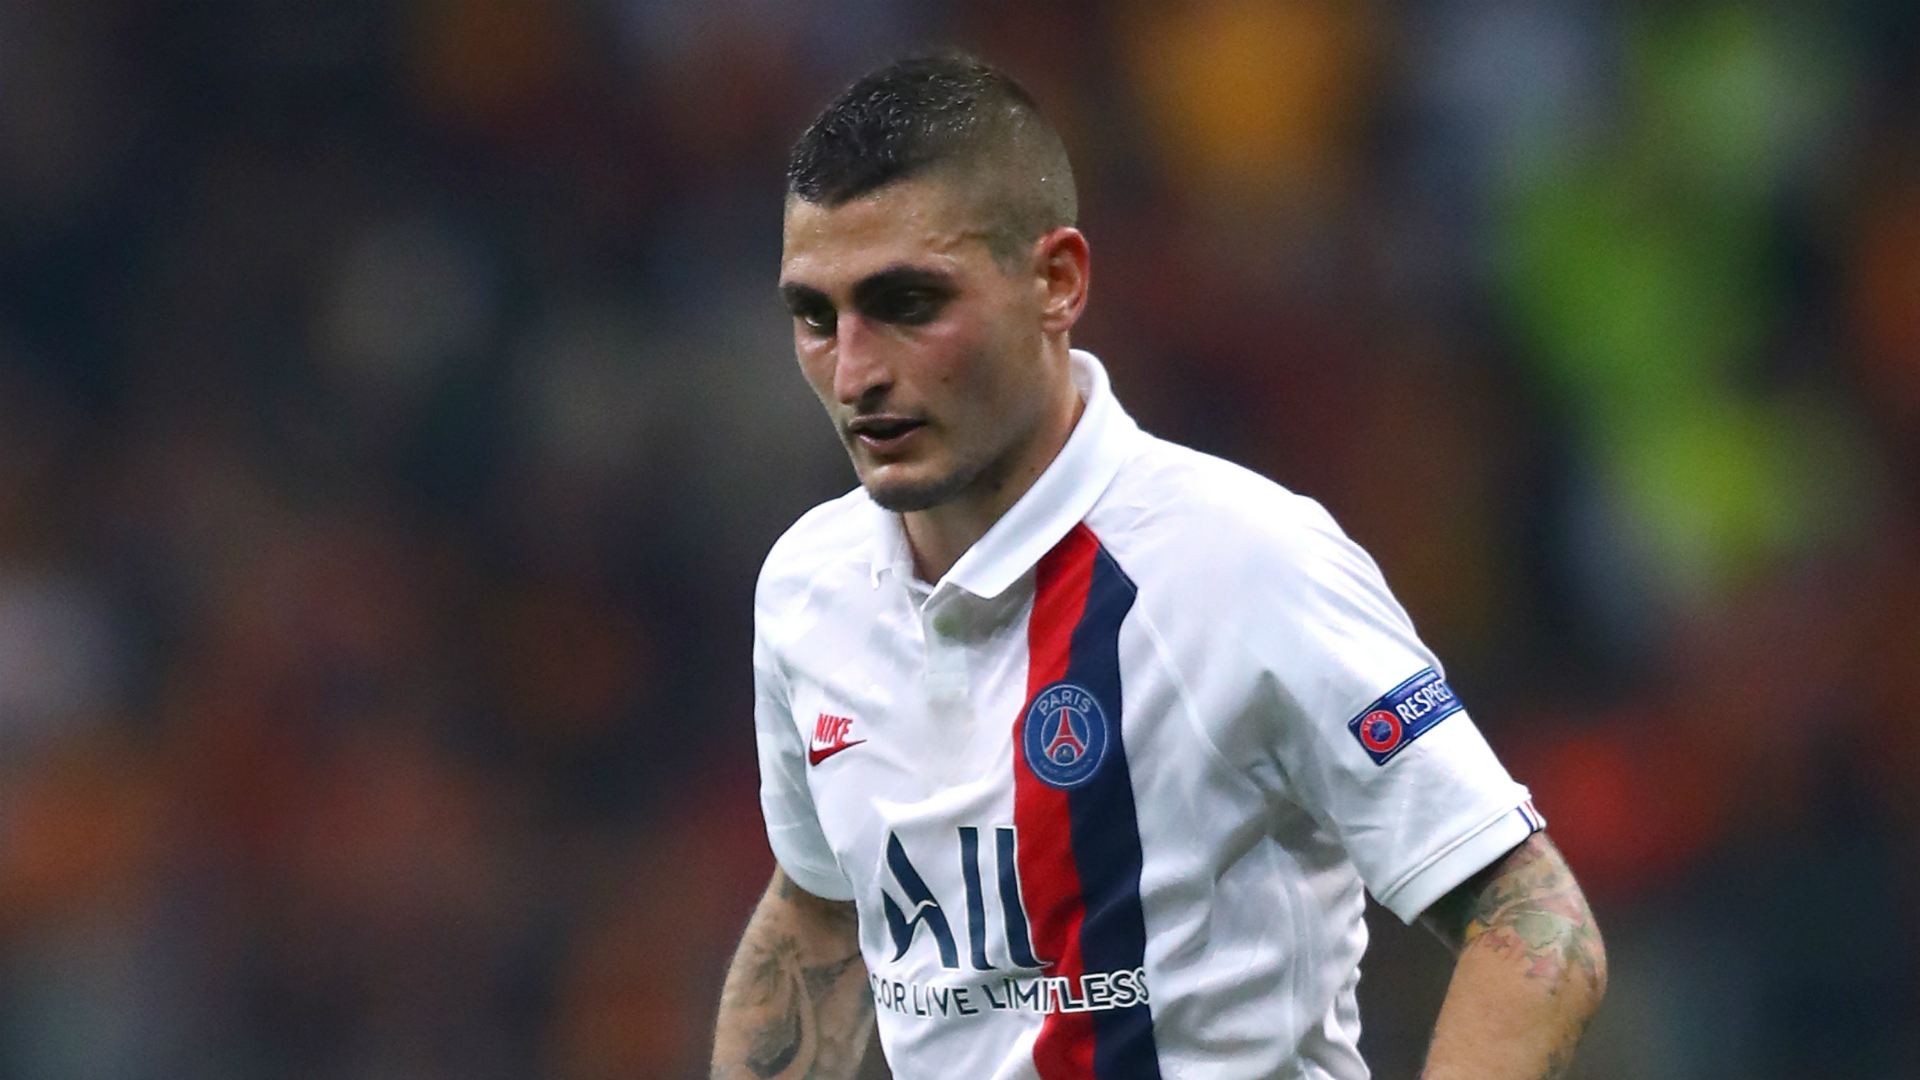 'He's one of the best midfielders in the world' - Tuchel hails PSG's Verratti following new contract